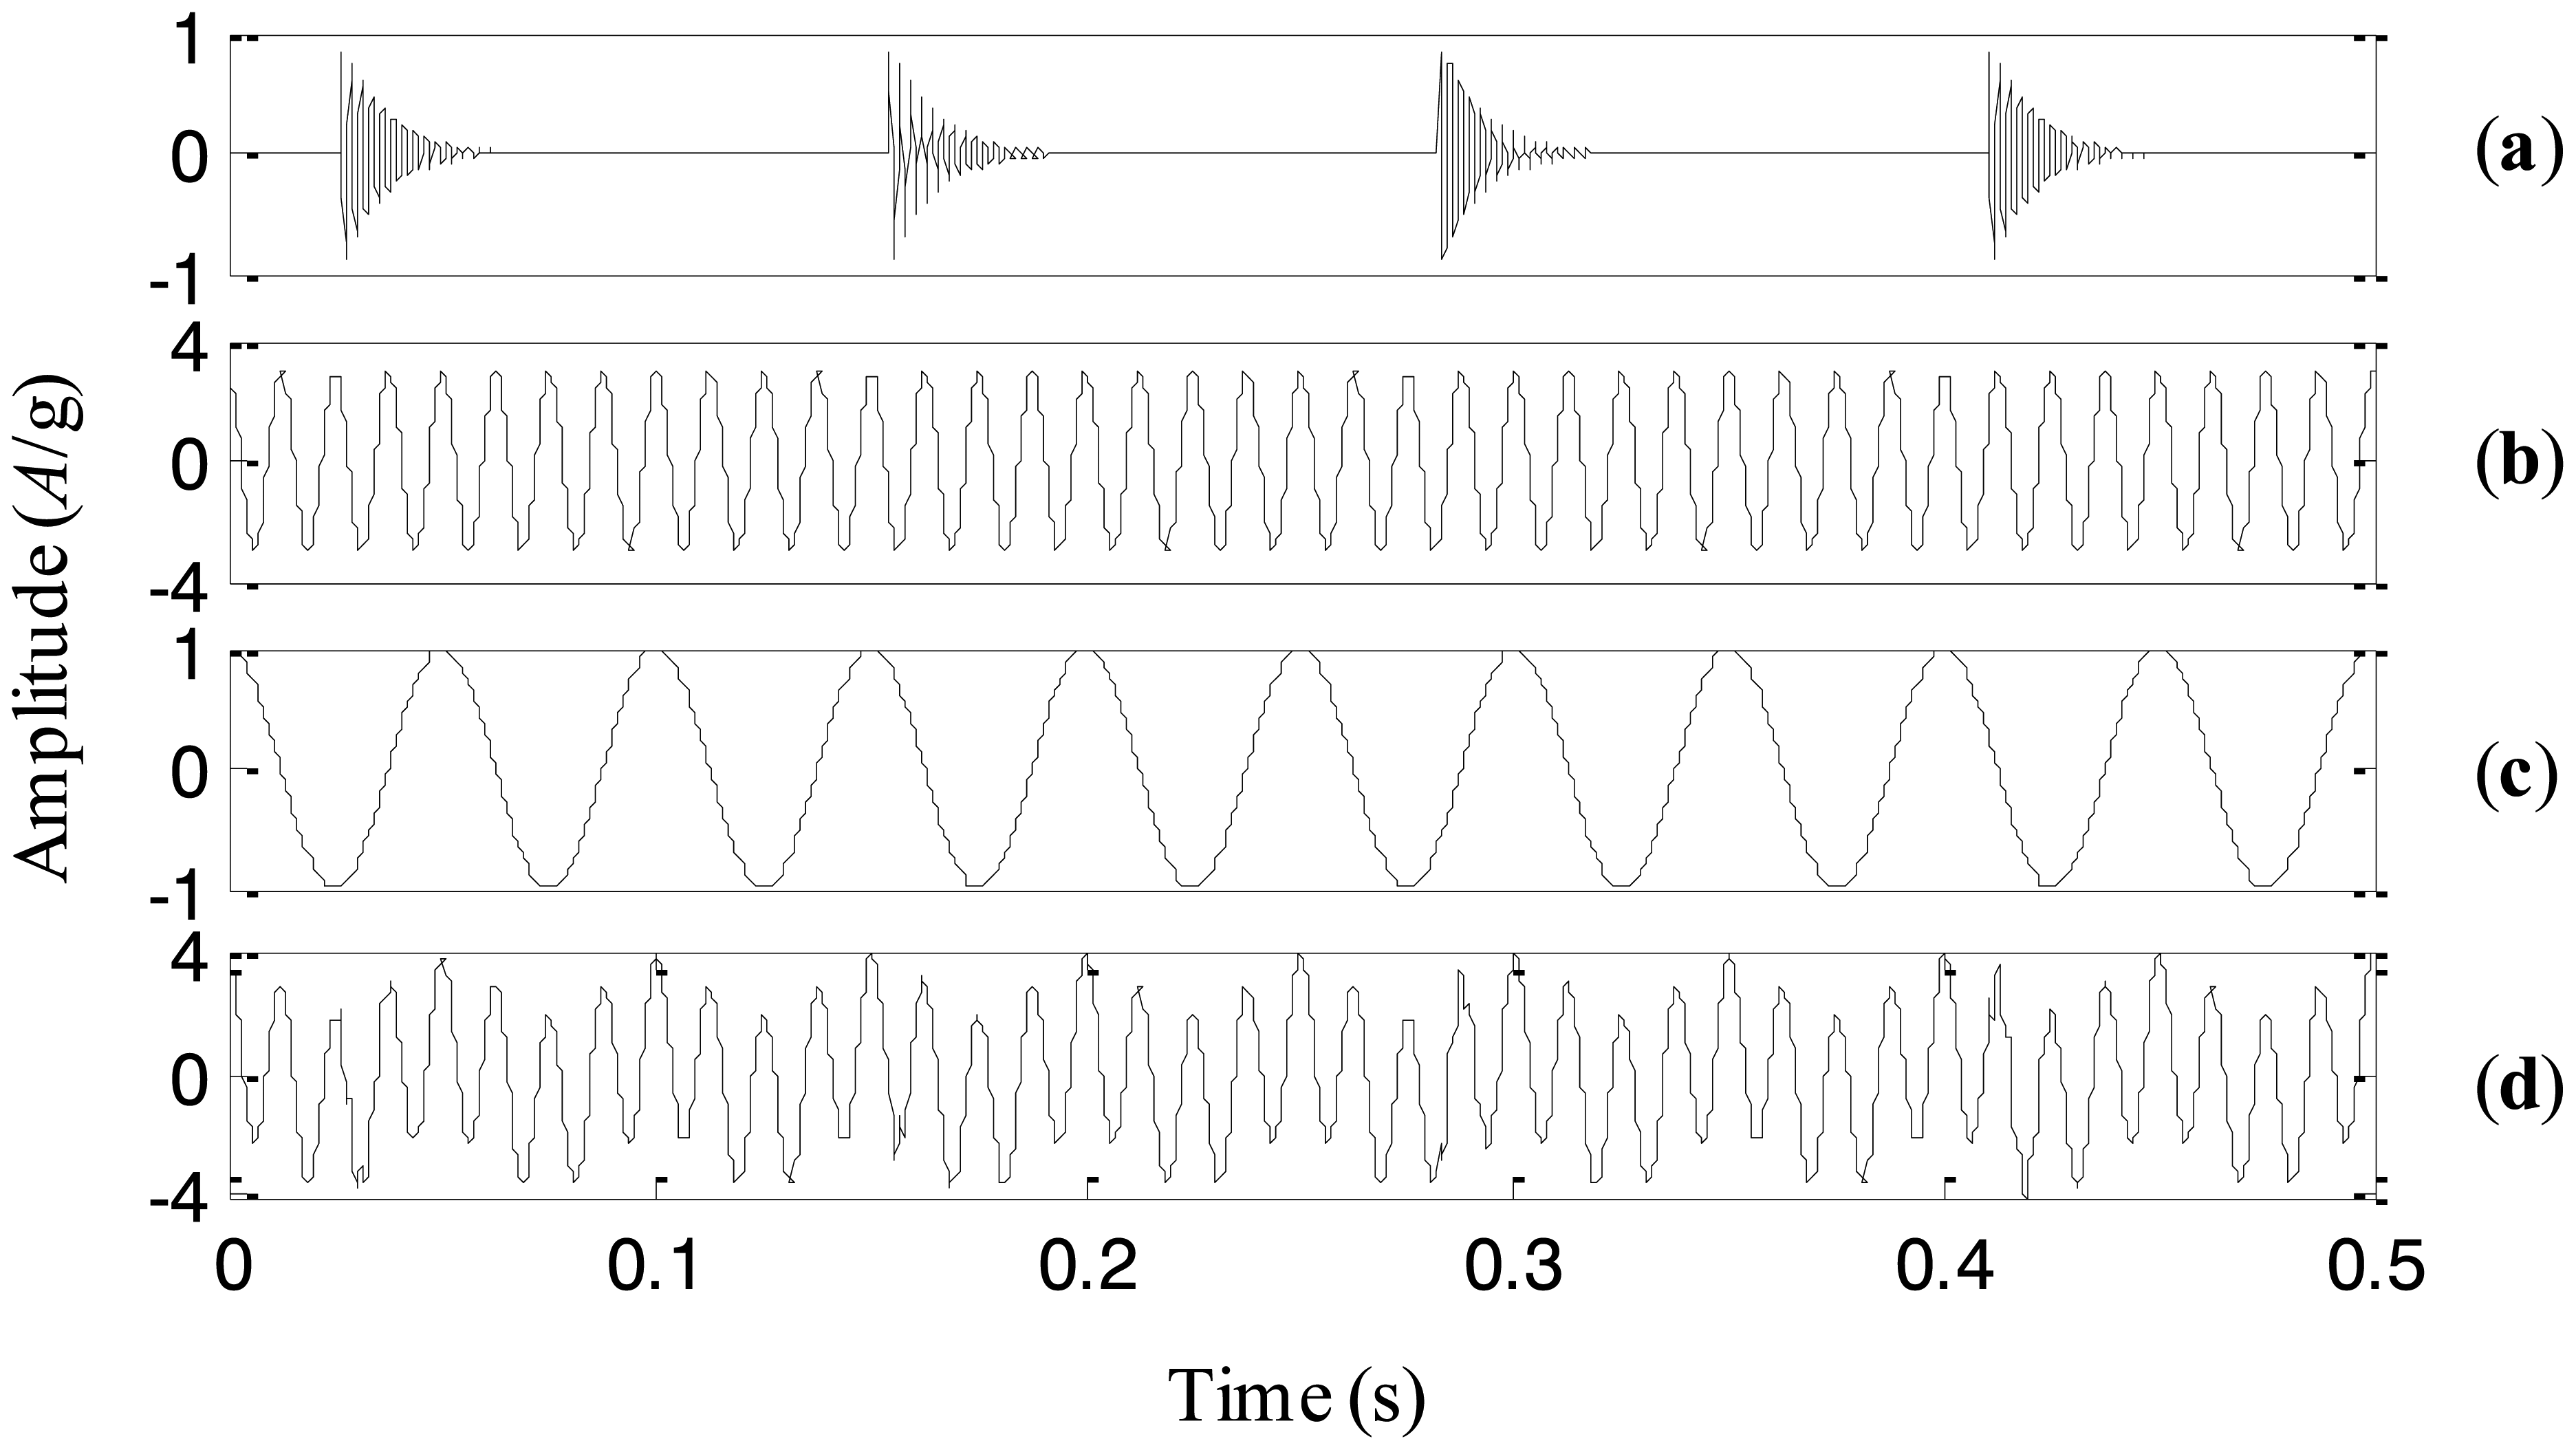 empirical mode decomposition thesis Variational mode decomposition konstantin dragomiretskiy and dominique zosso∗, member, ieee abstract—in the late nineties, huang introduced the hilbert- huang transform, also known as empirical mode decomposition the goal is to recursively decompose a signal into different modes of separate spectral bands.